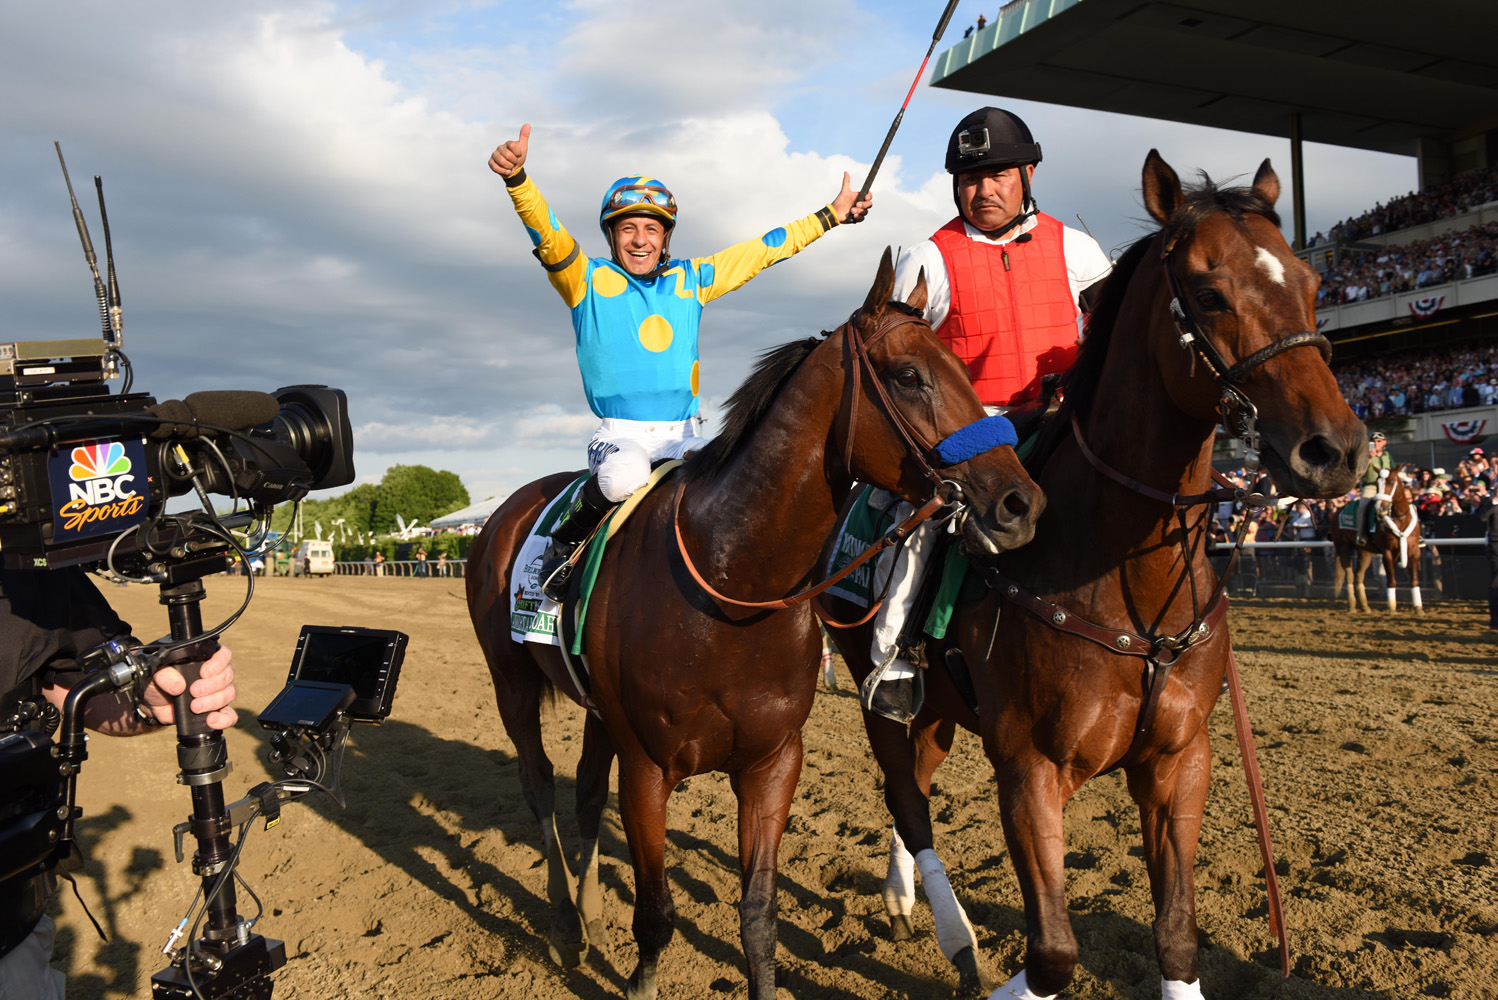 Victor Espinoza and American Pharoah after winning the 2015 Belmont Stakes and Triple Crown (NYRA)